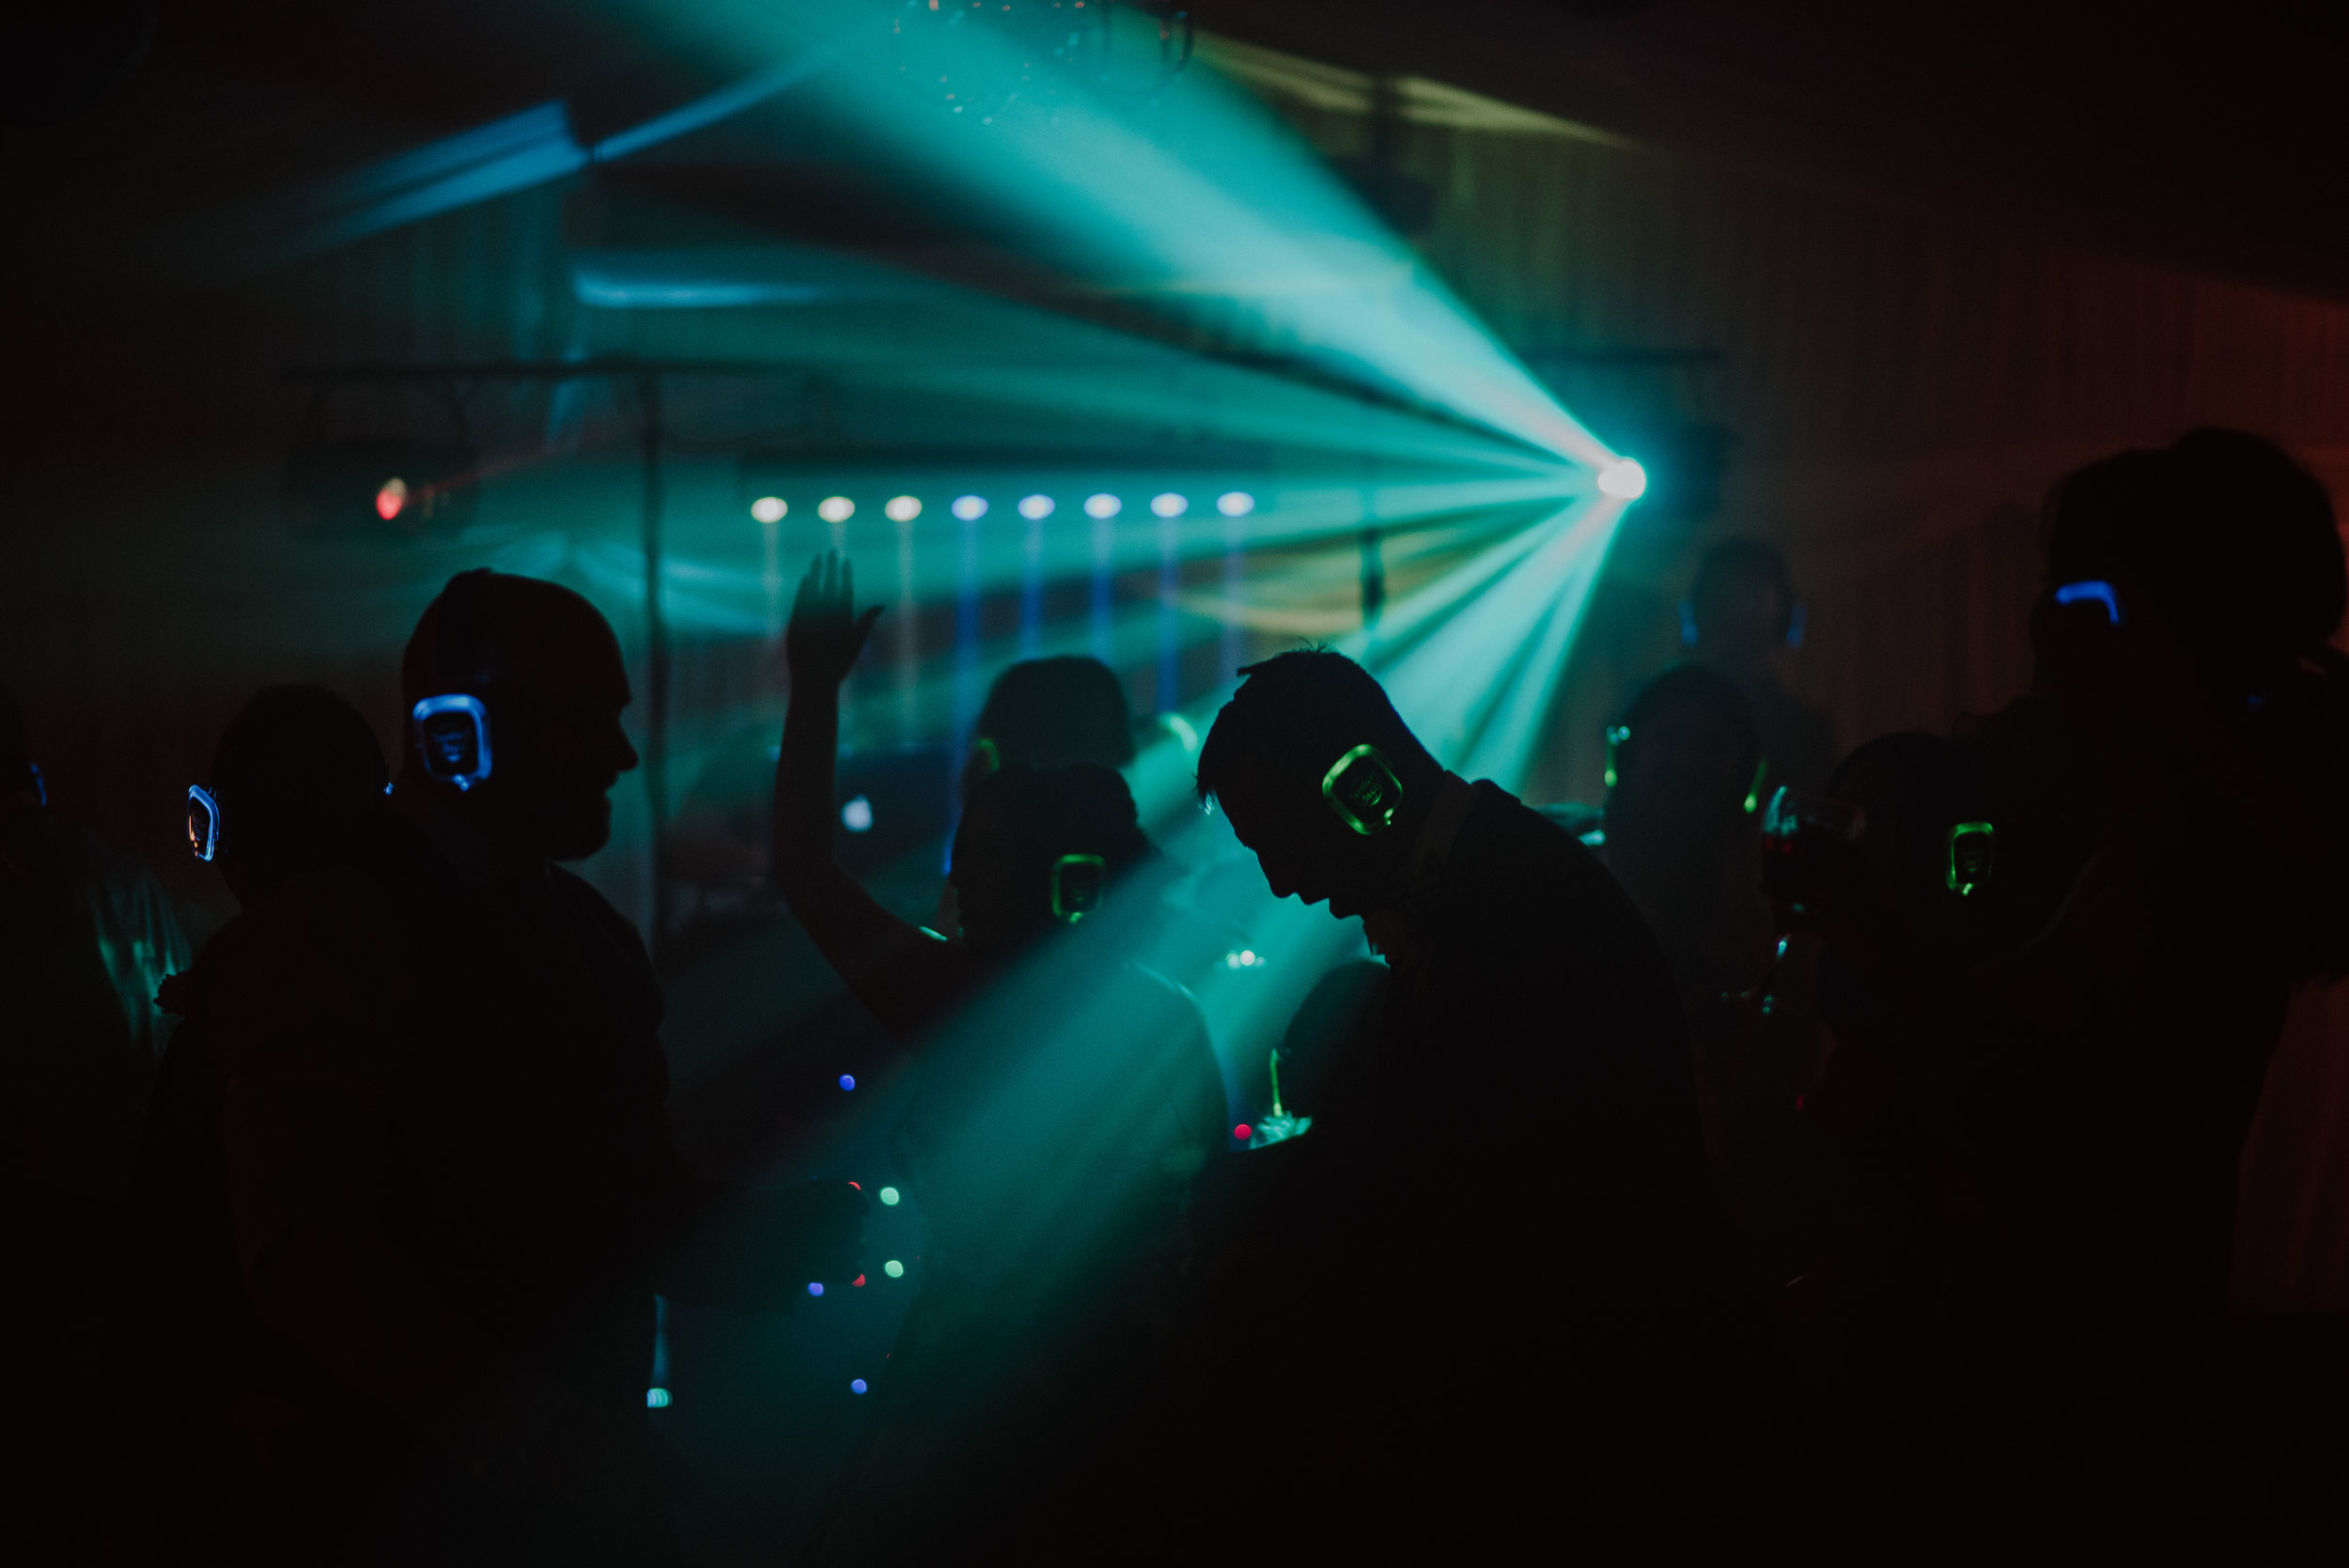 Silent-Disco-Cornwall-Wedding-5.jpg